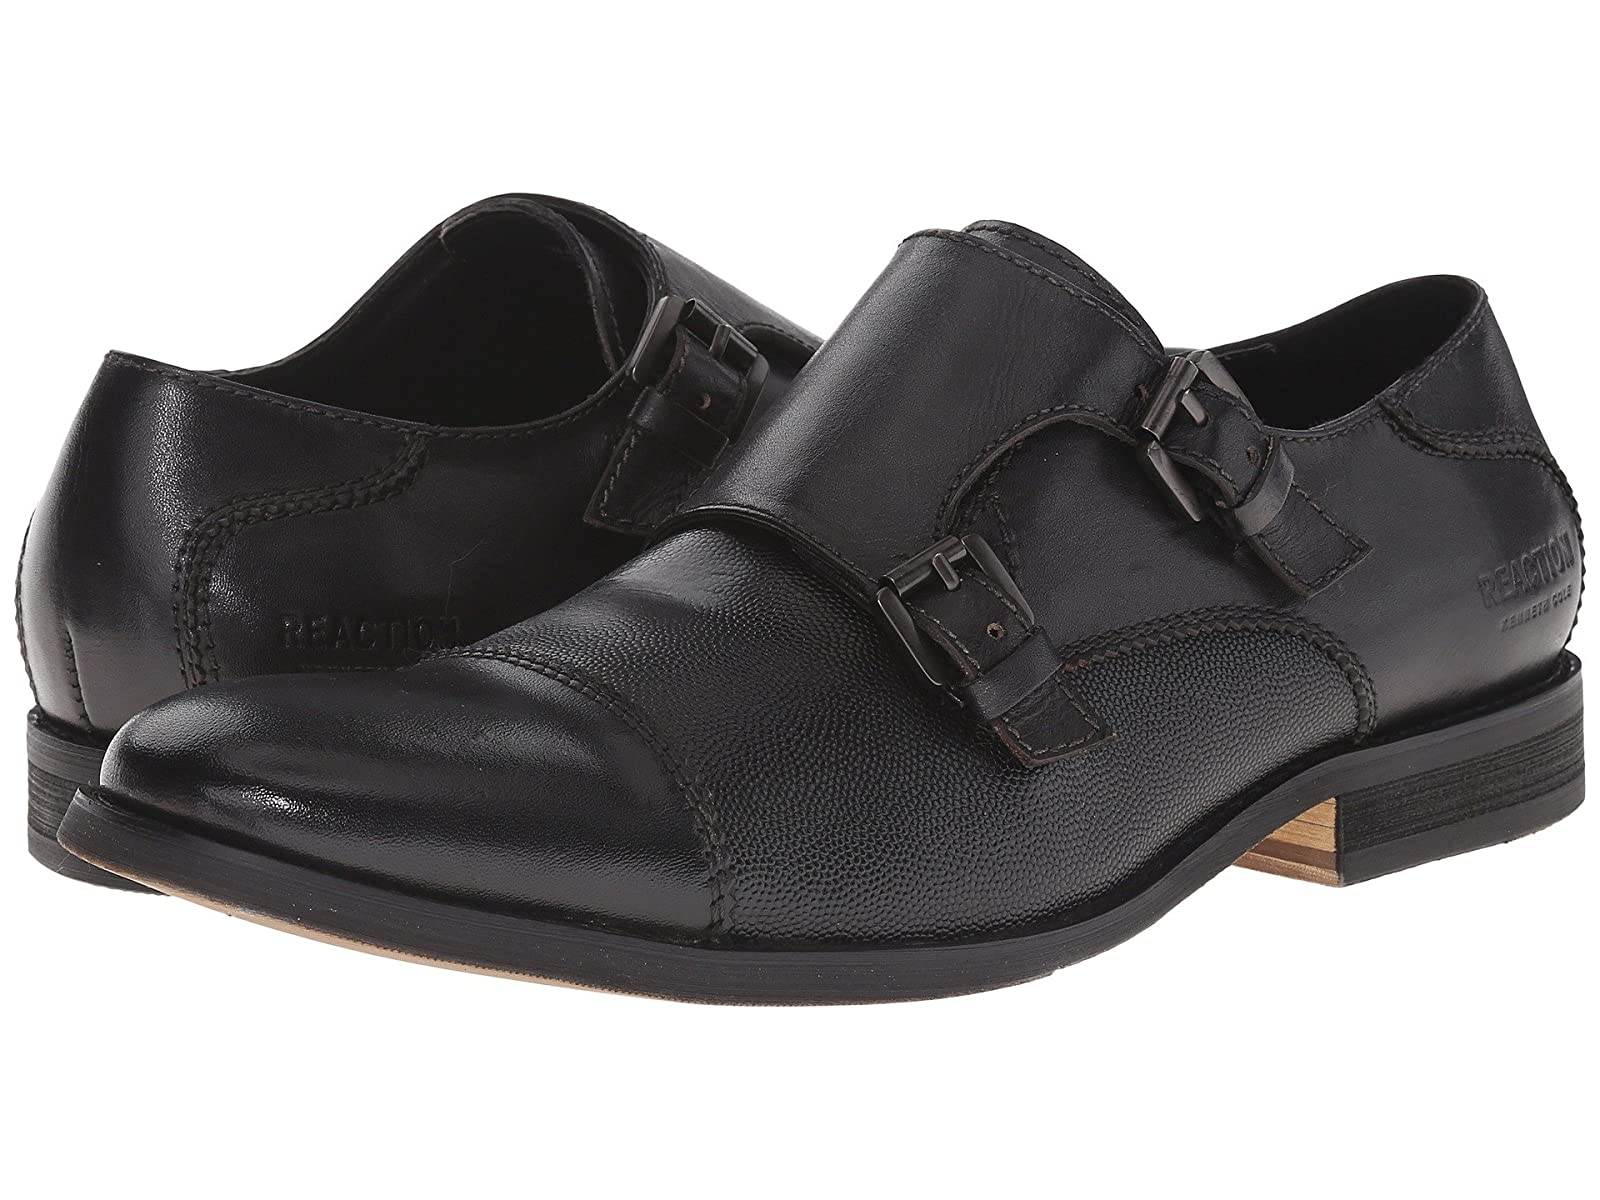 Kenneth Cole Reaction Make A WishCheap and distinctive eye-catching shoes